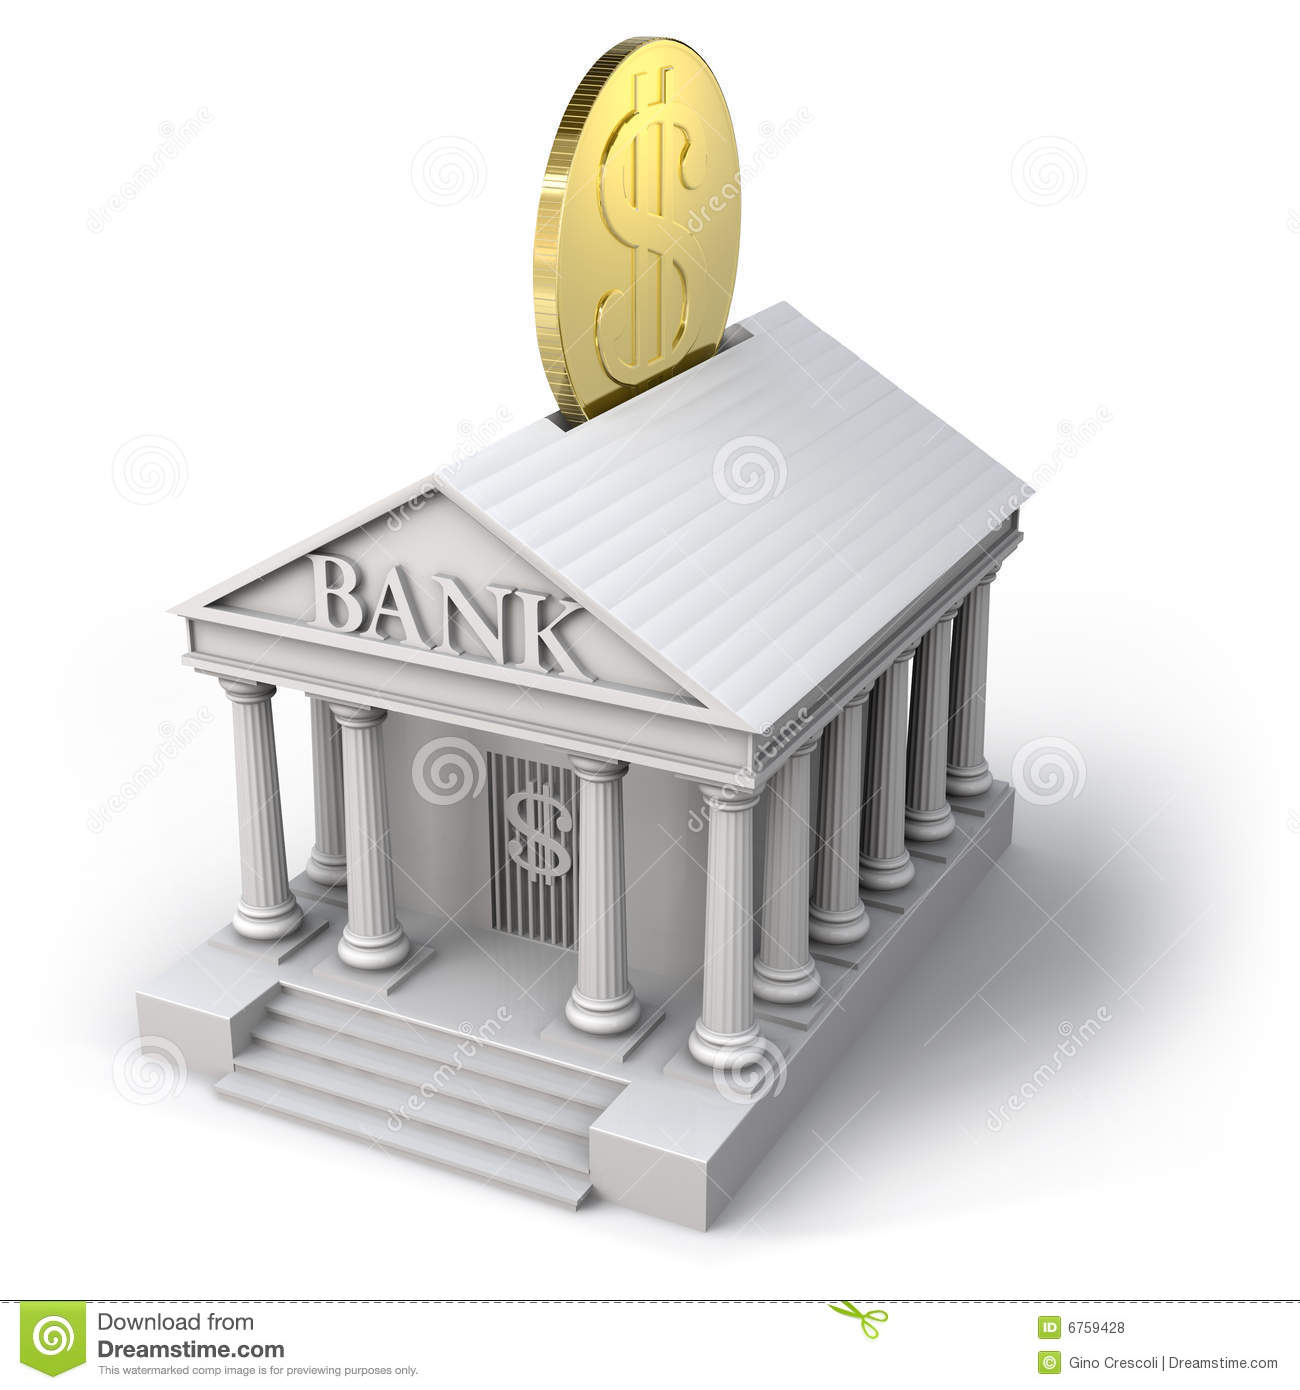 How To Read Building Plans Bank Icon Royalty Free Stock Photos Image 6759428